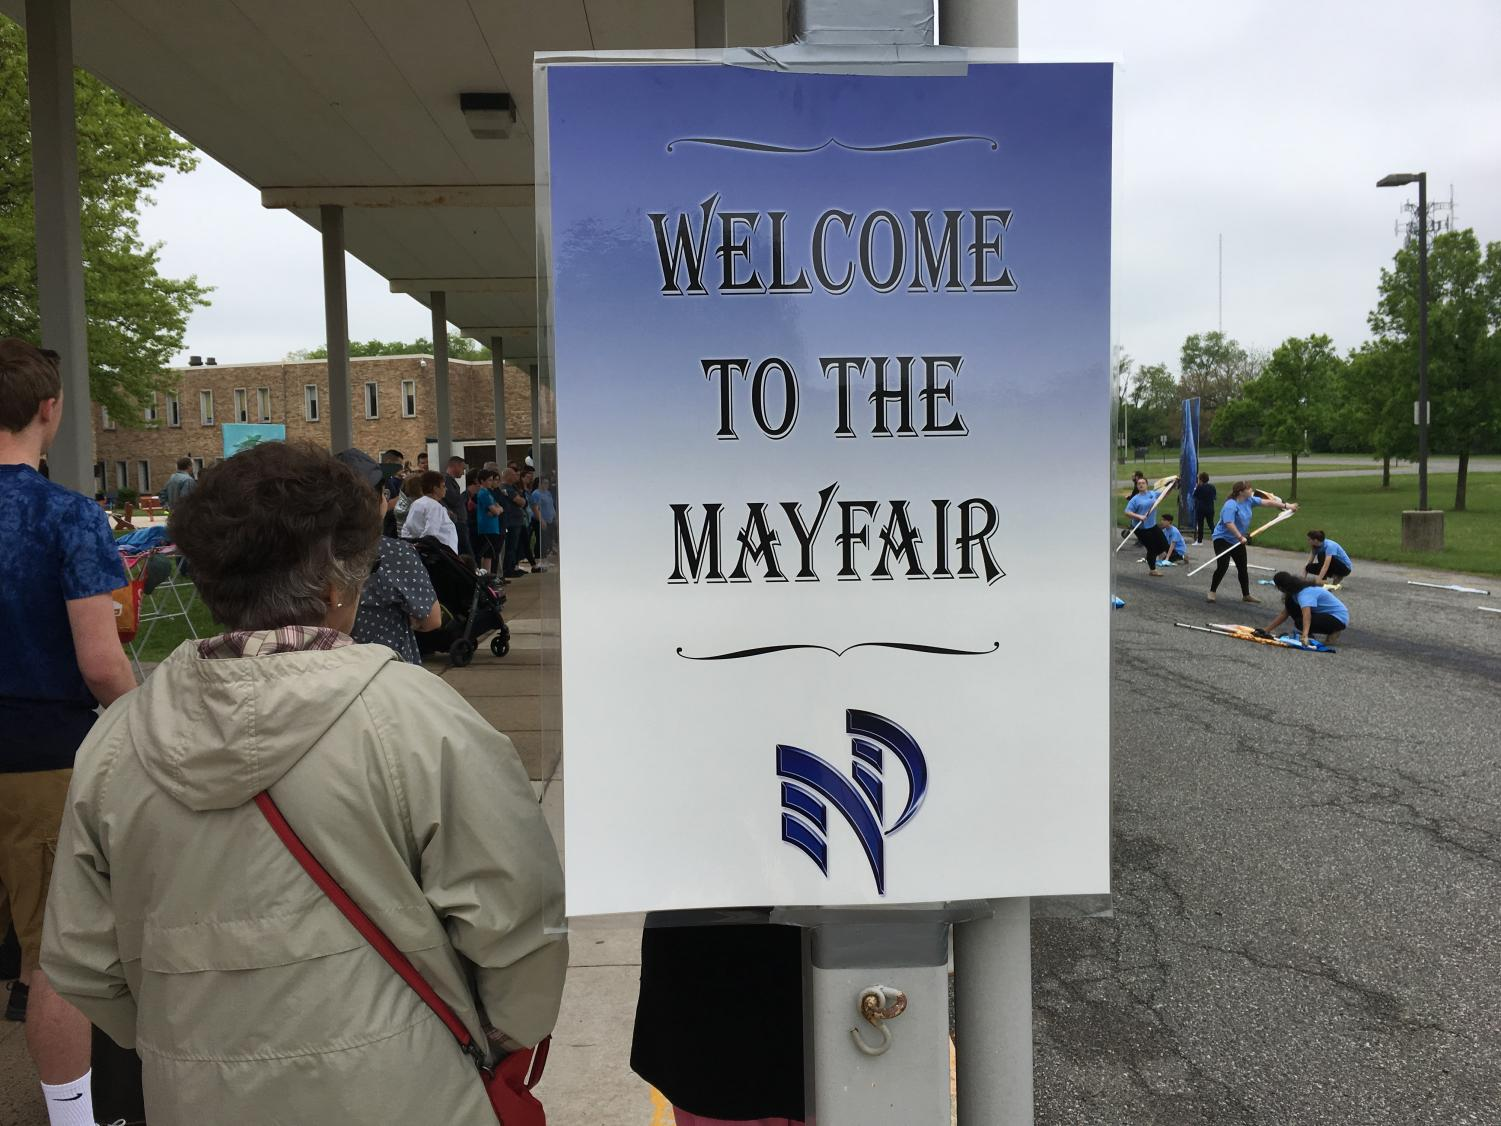 May Fair brought music and fun even on a rainy day!